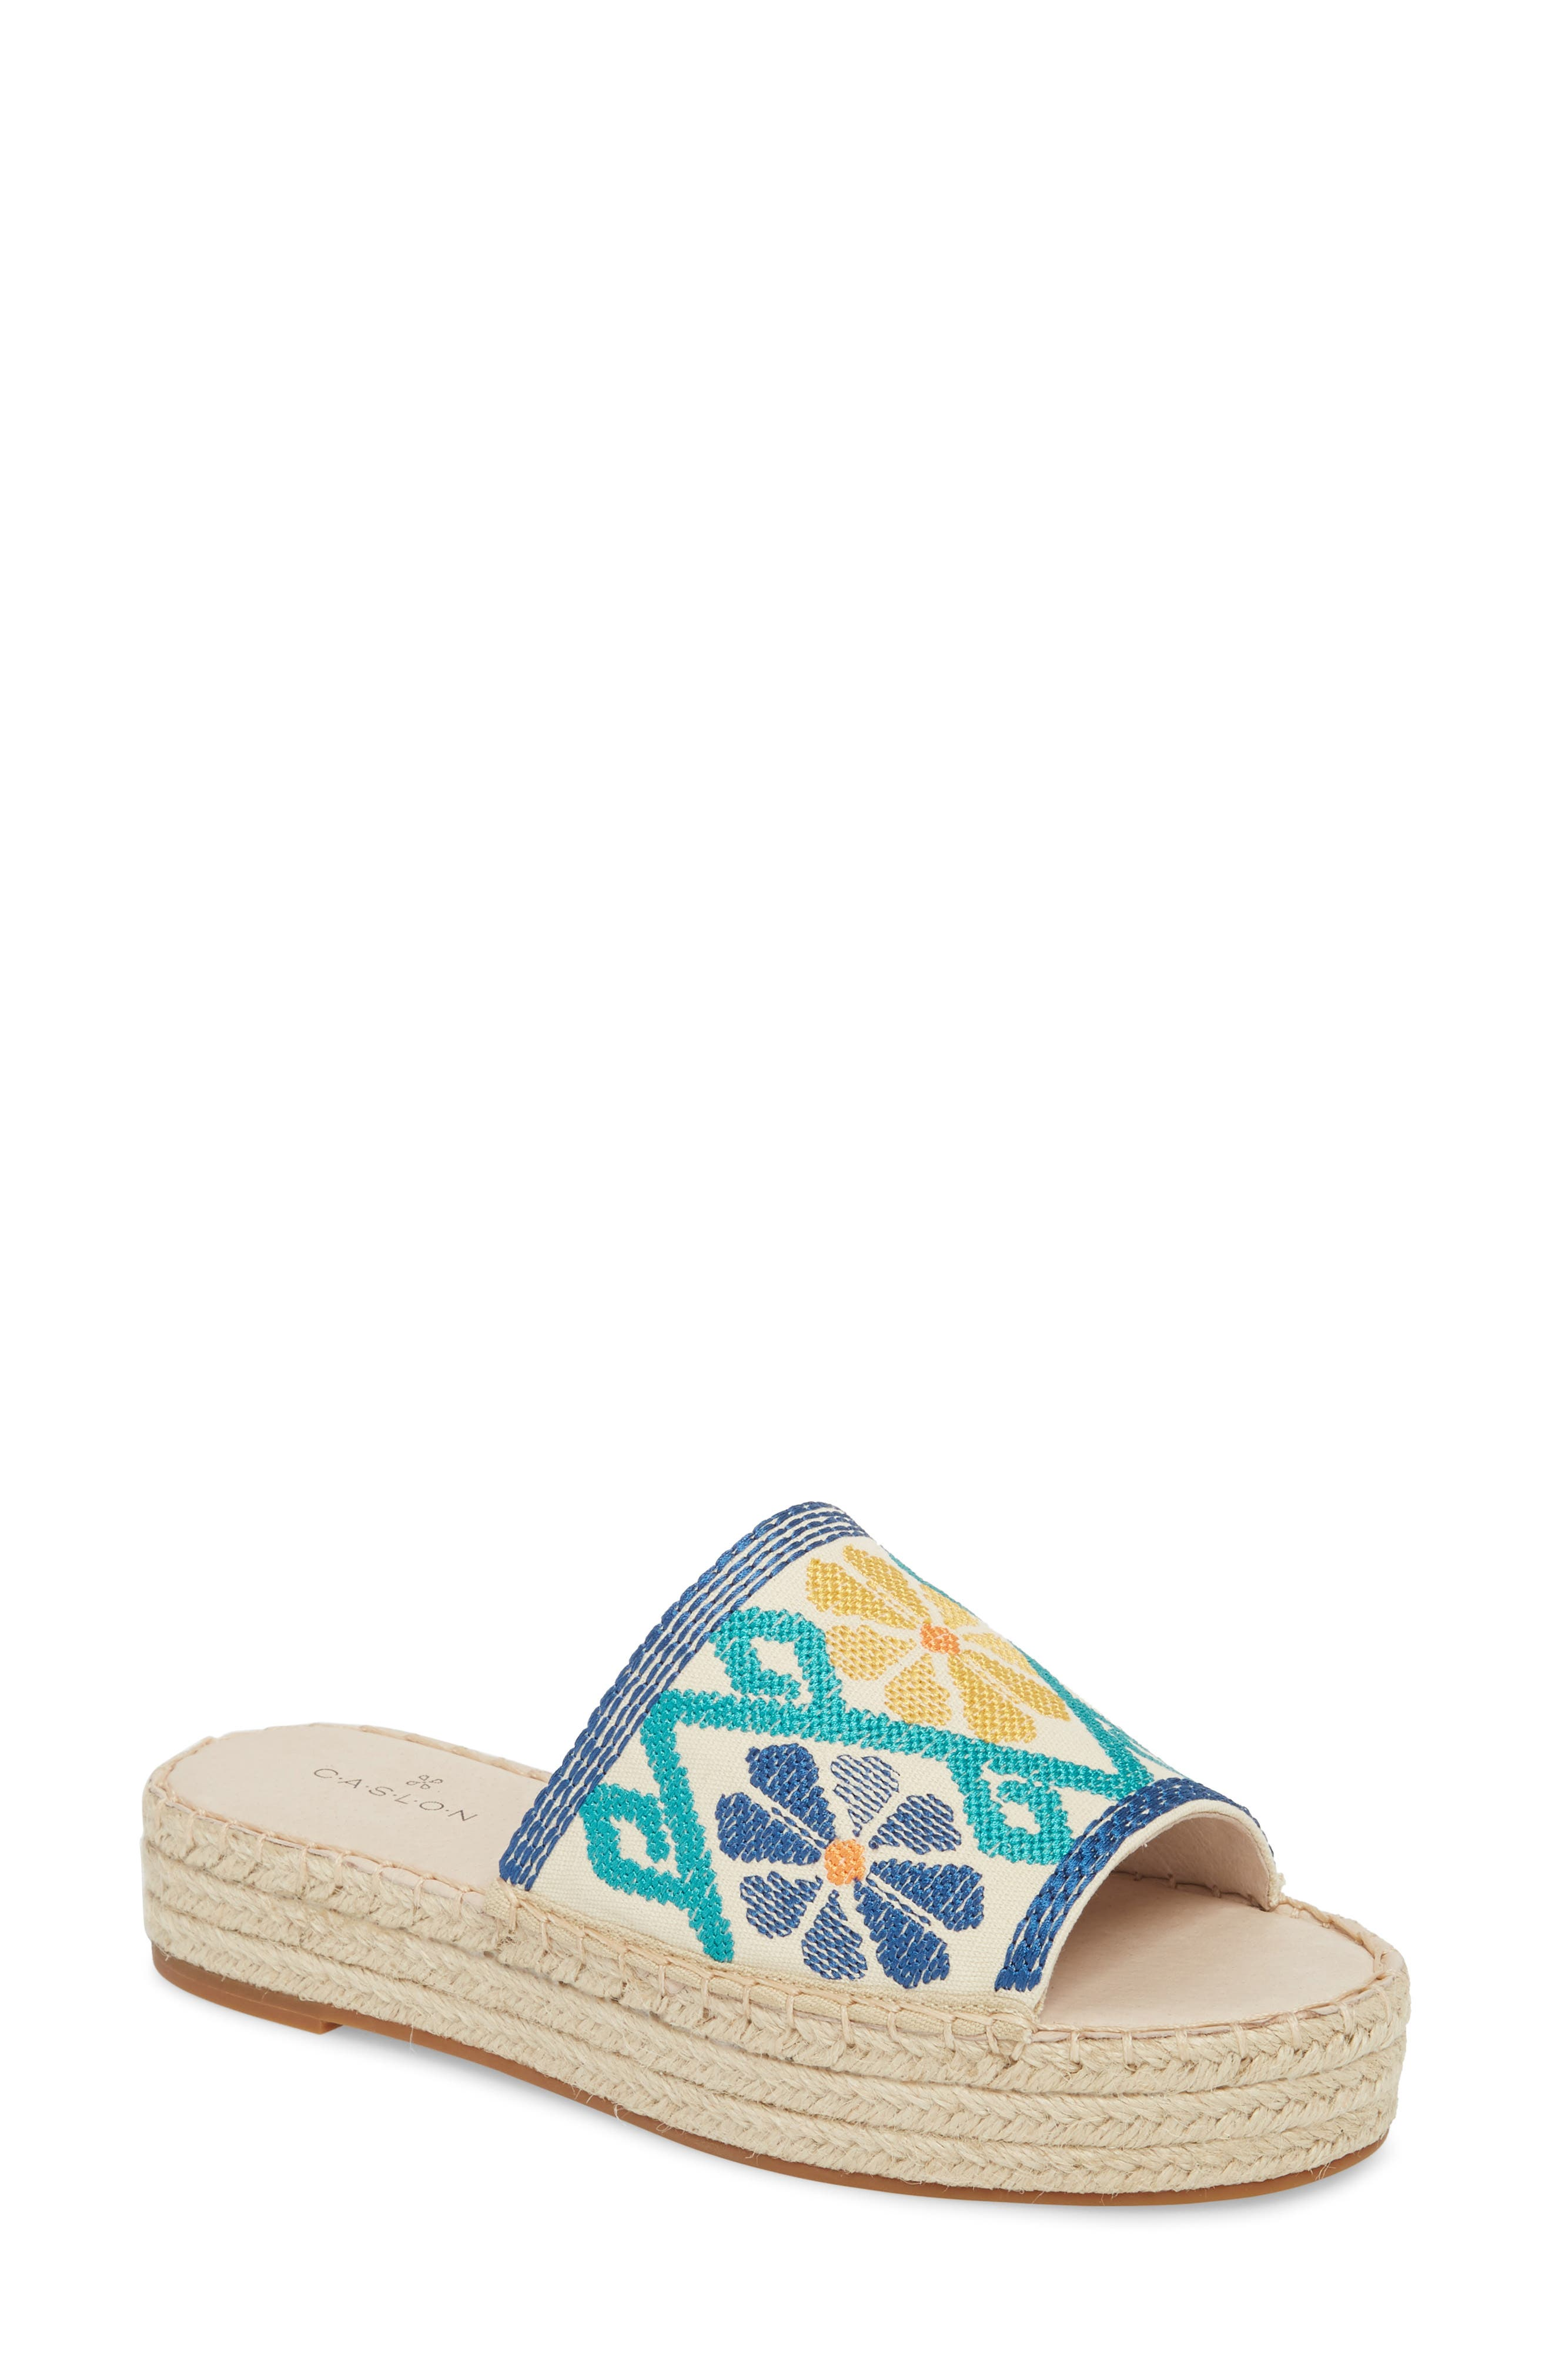 Cammy Platform Slide Sandal,                             Main thumbnail 1, color,                             Natural Embroidery Fabric